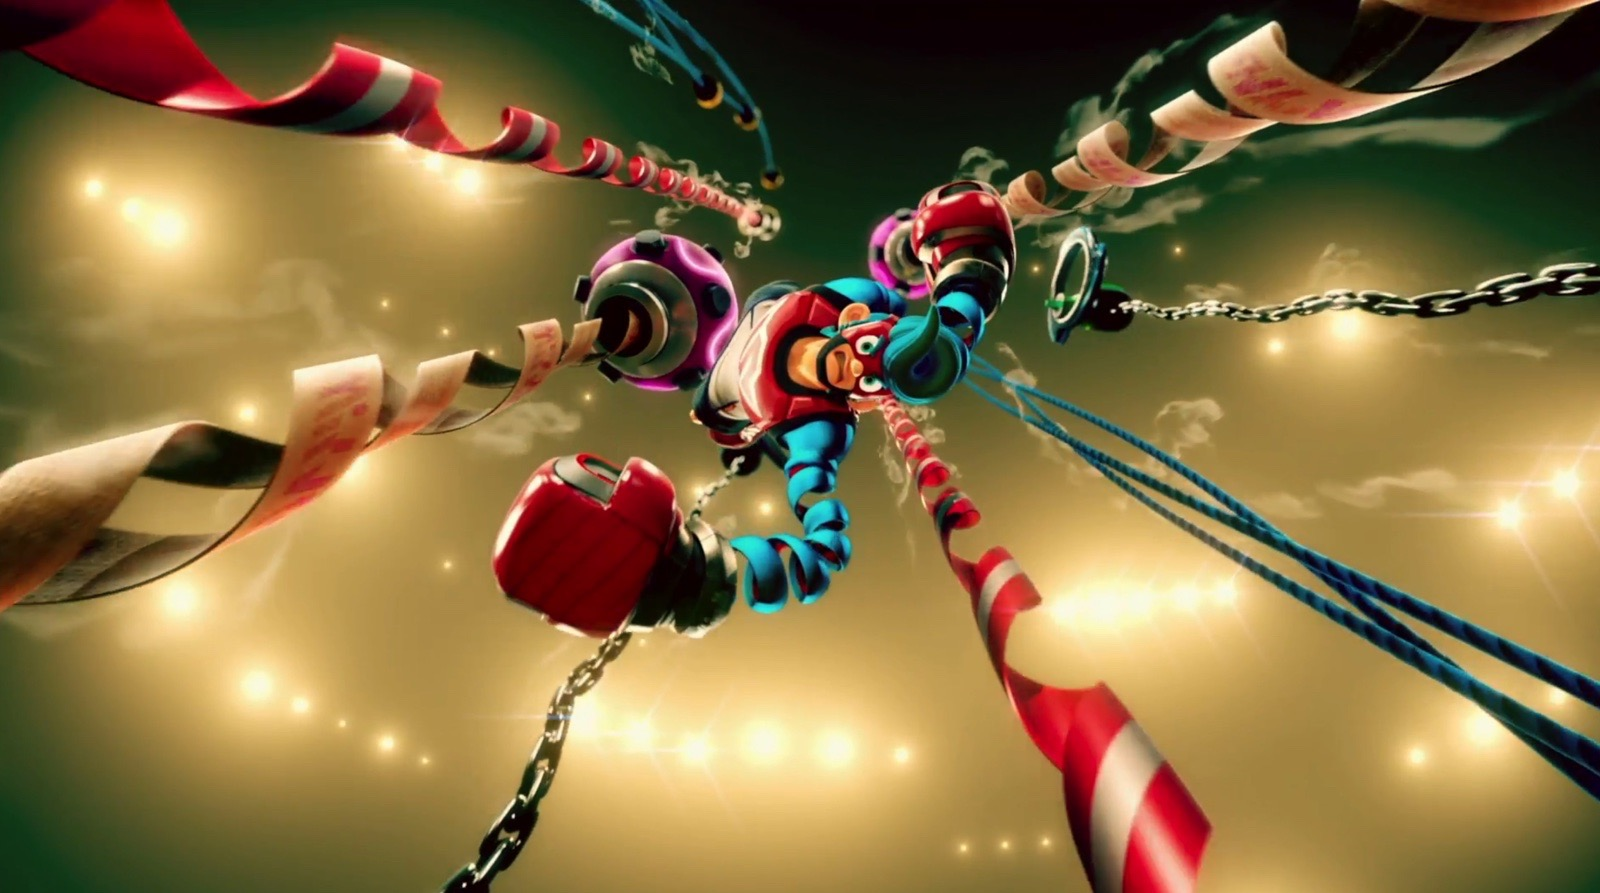 Video: Check Out More 'Arms' Footage From Nintendo Japan